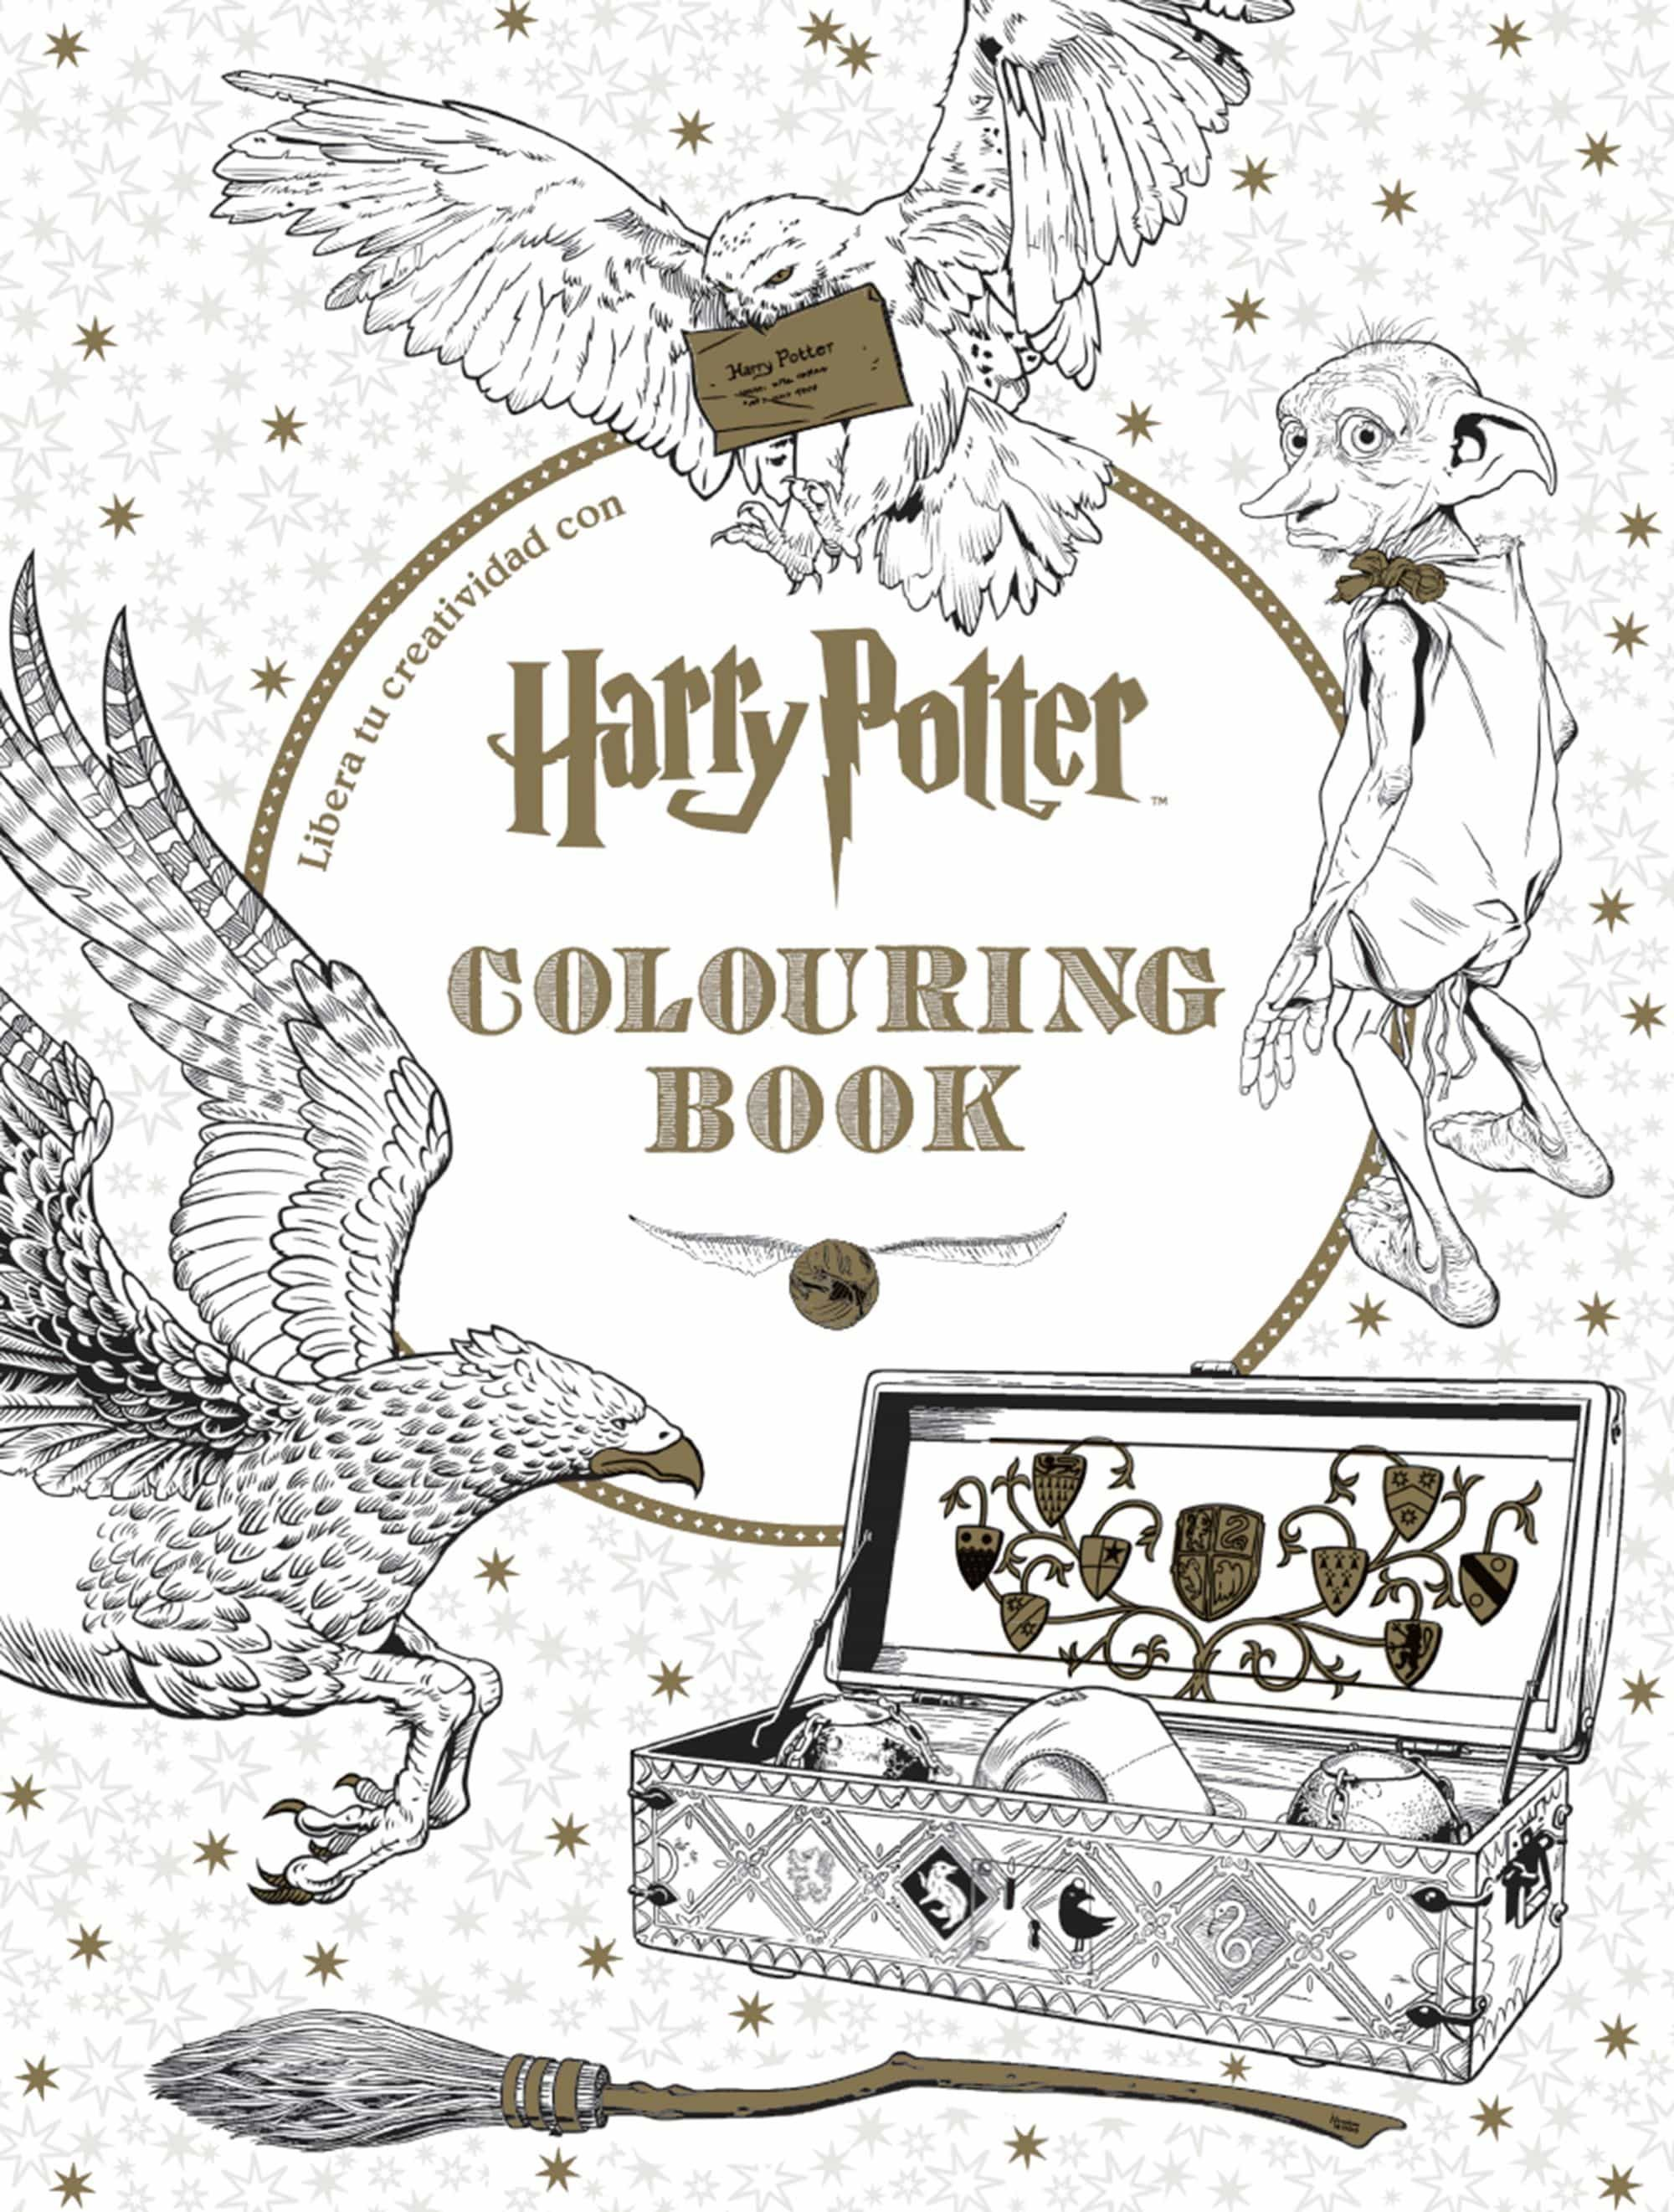 Comprar Libros De Harry Potter Harry Potter Colouring Book Vv Aa Comprar Libro